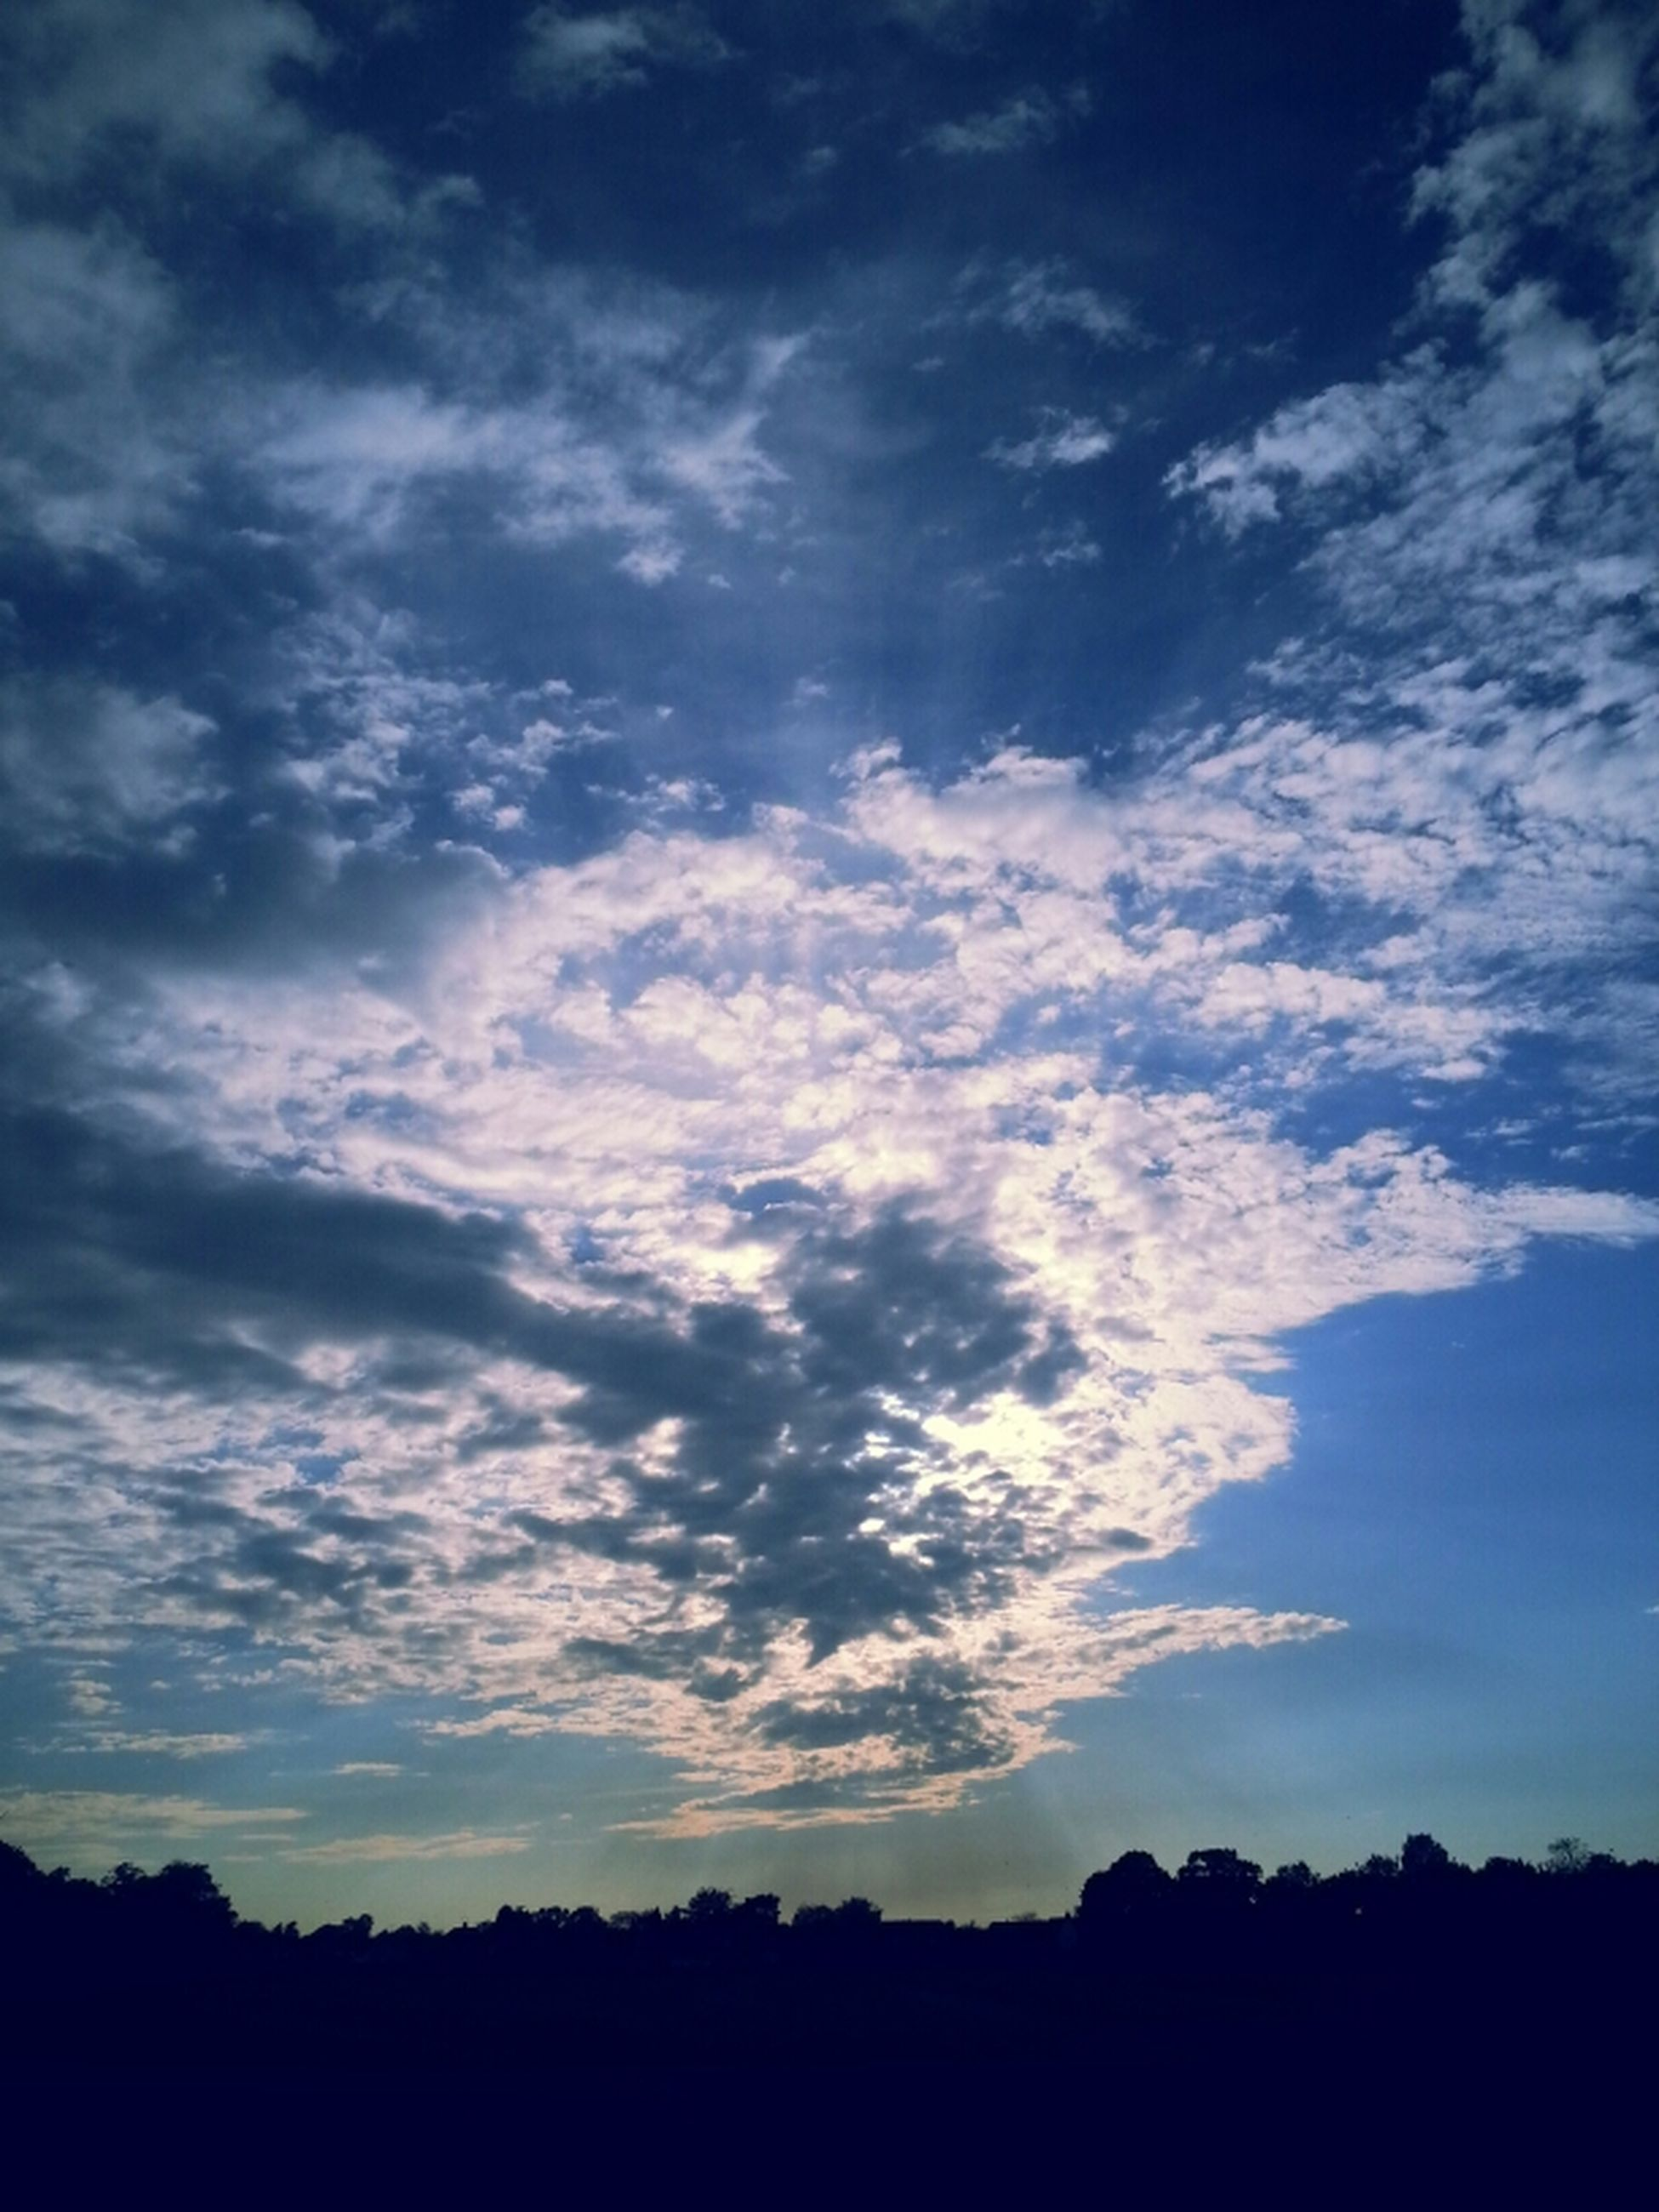 silhouette, sky, tranquility, tranquil scene, scenics, beauty in nature, cloud - sky, nature, landscape, tree, cloud, idyllic, sunset, blue, low angle view, dark, outline, cloudy, dusk, outdoors